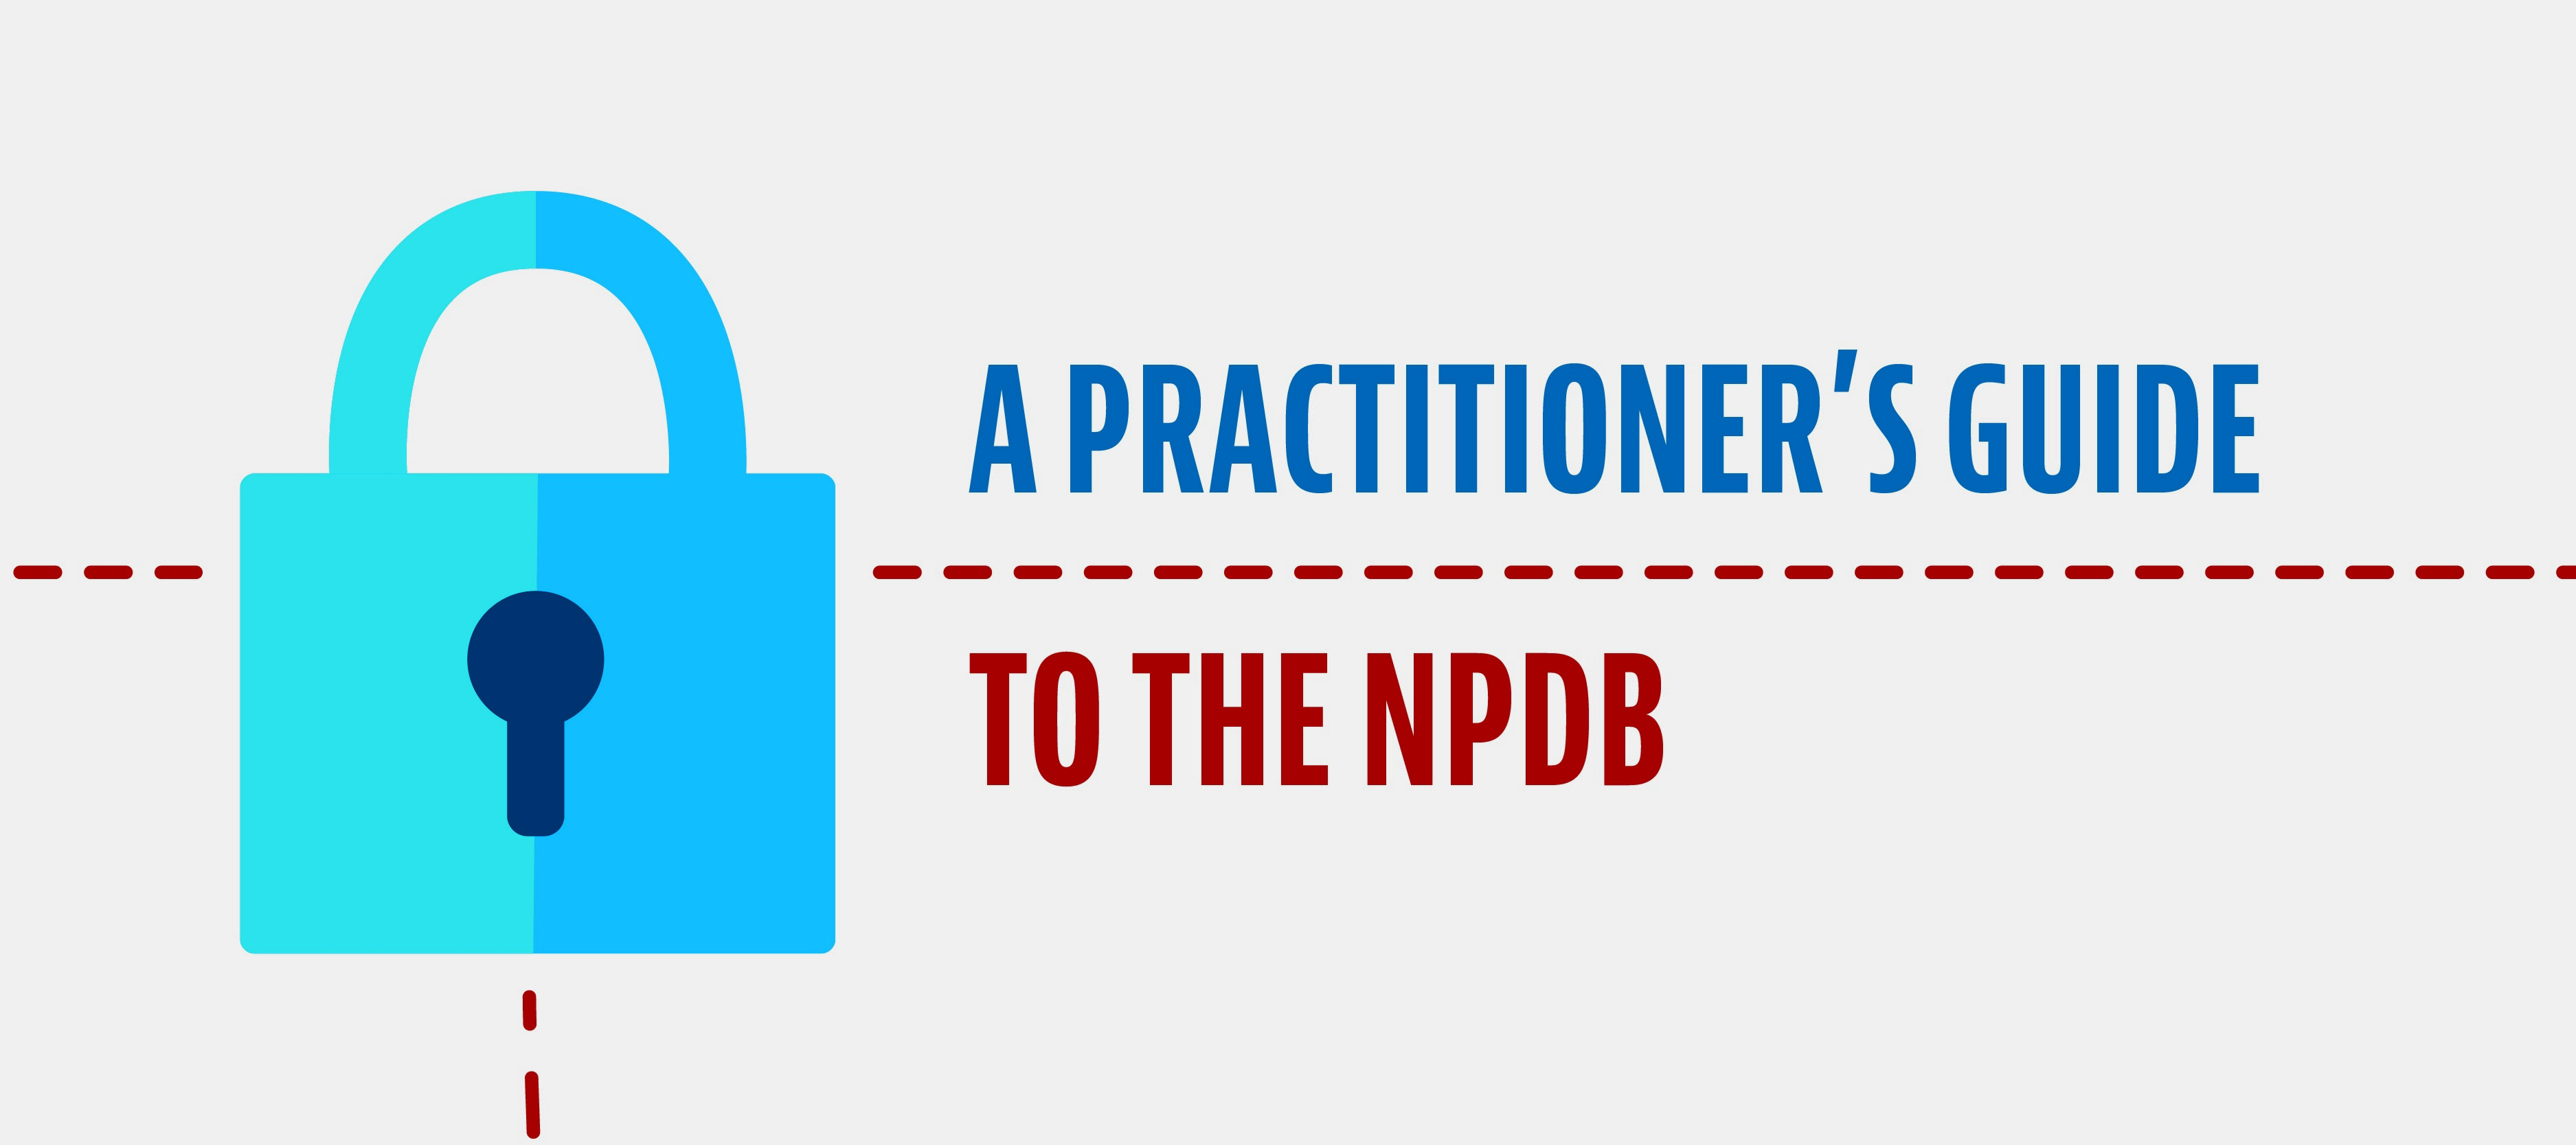 A Practitioner's Guide to the NPDB